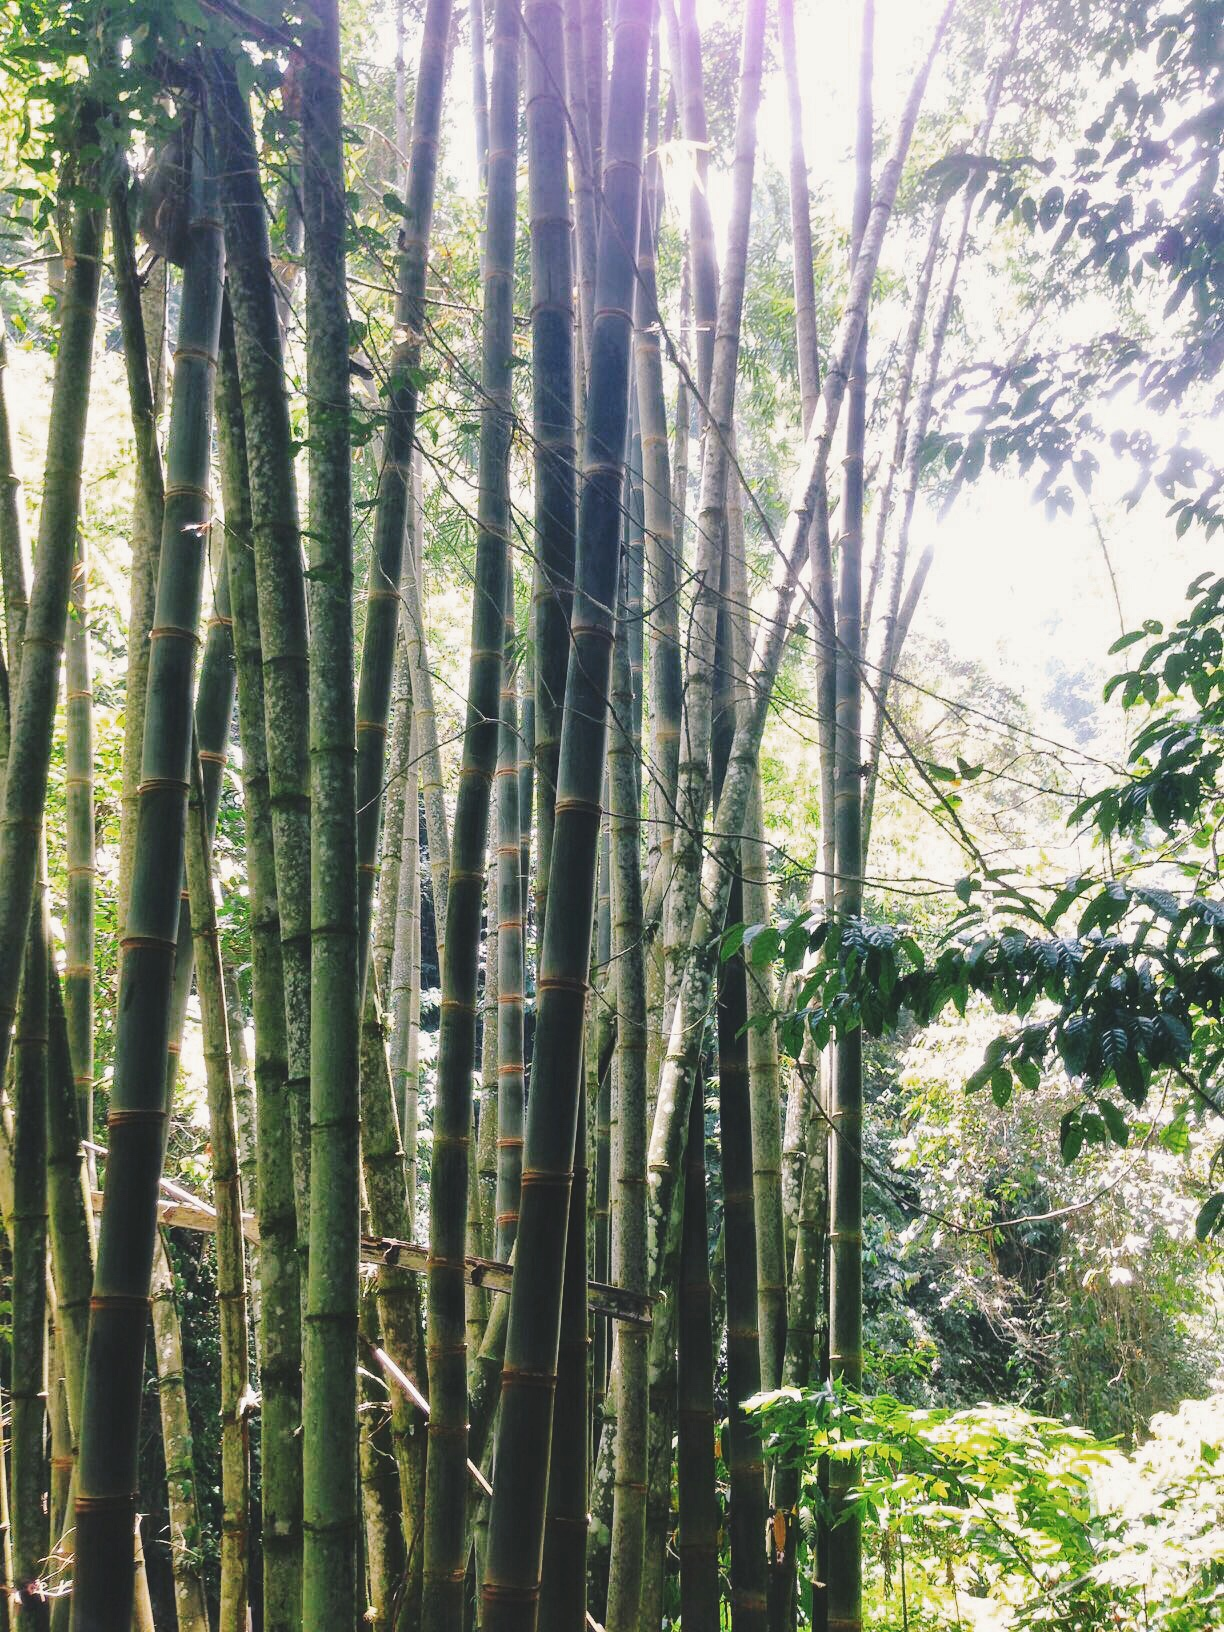 Bamboo at Casaroro Falls